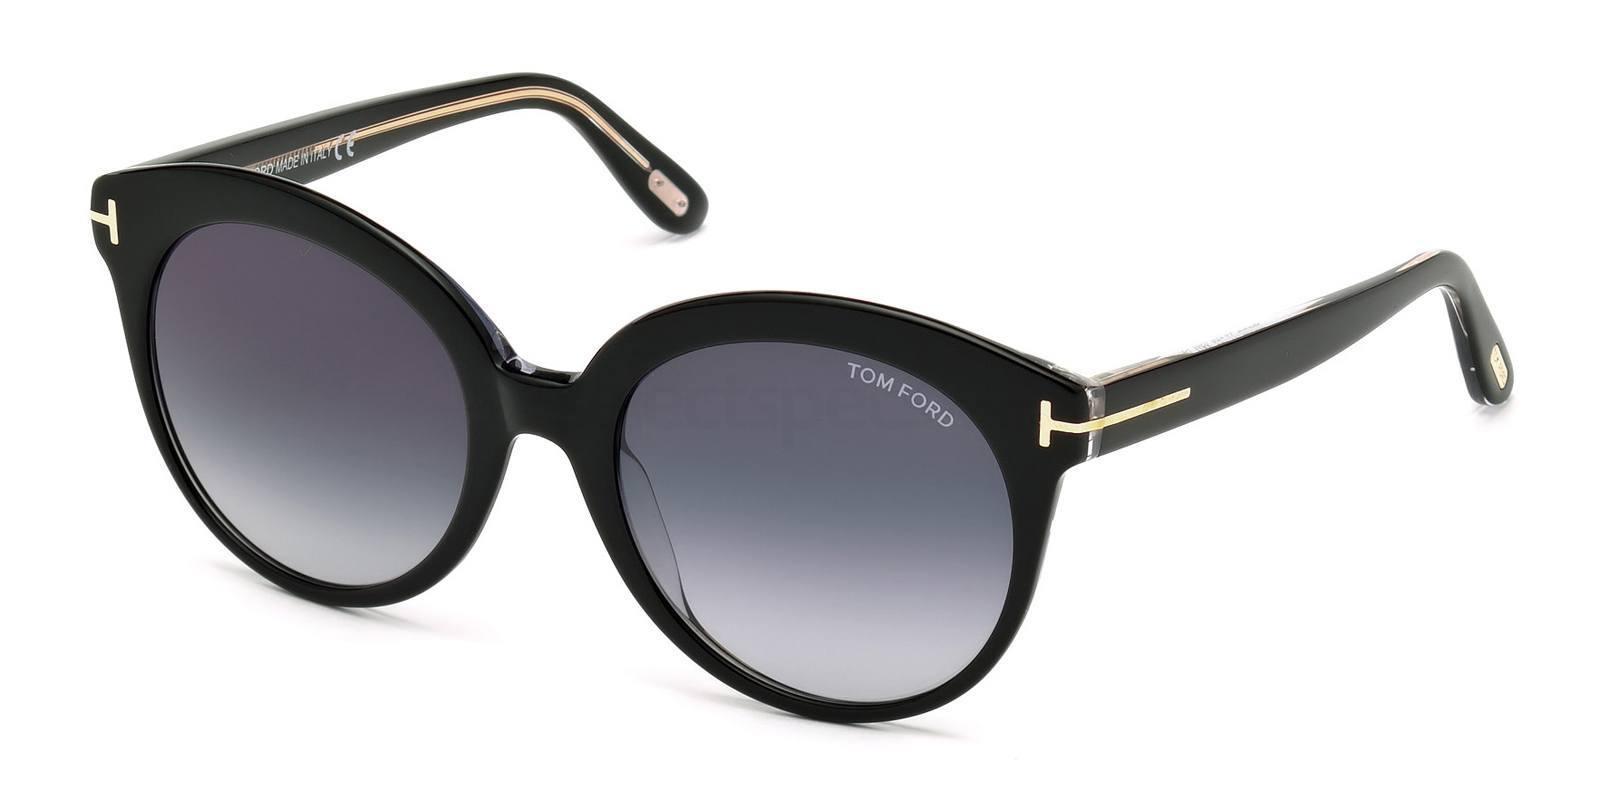 03W FT0429 Sunglasses, Tom Ford